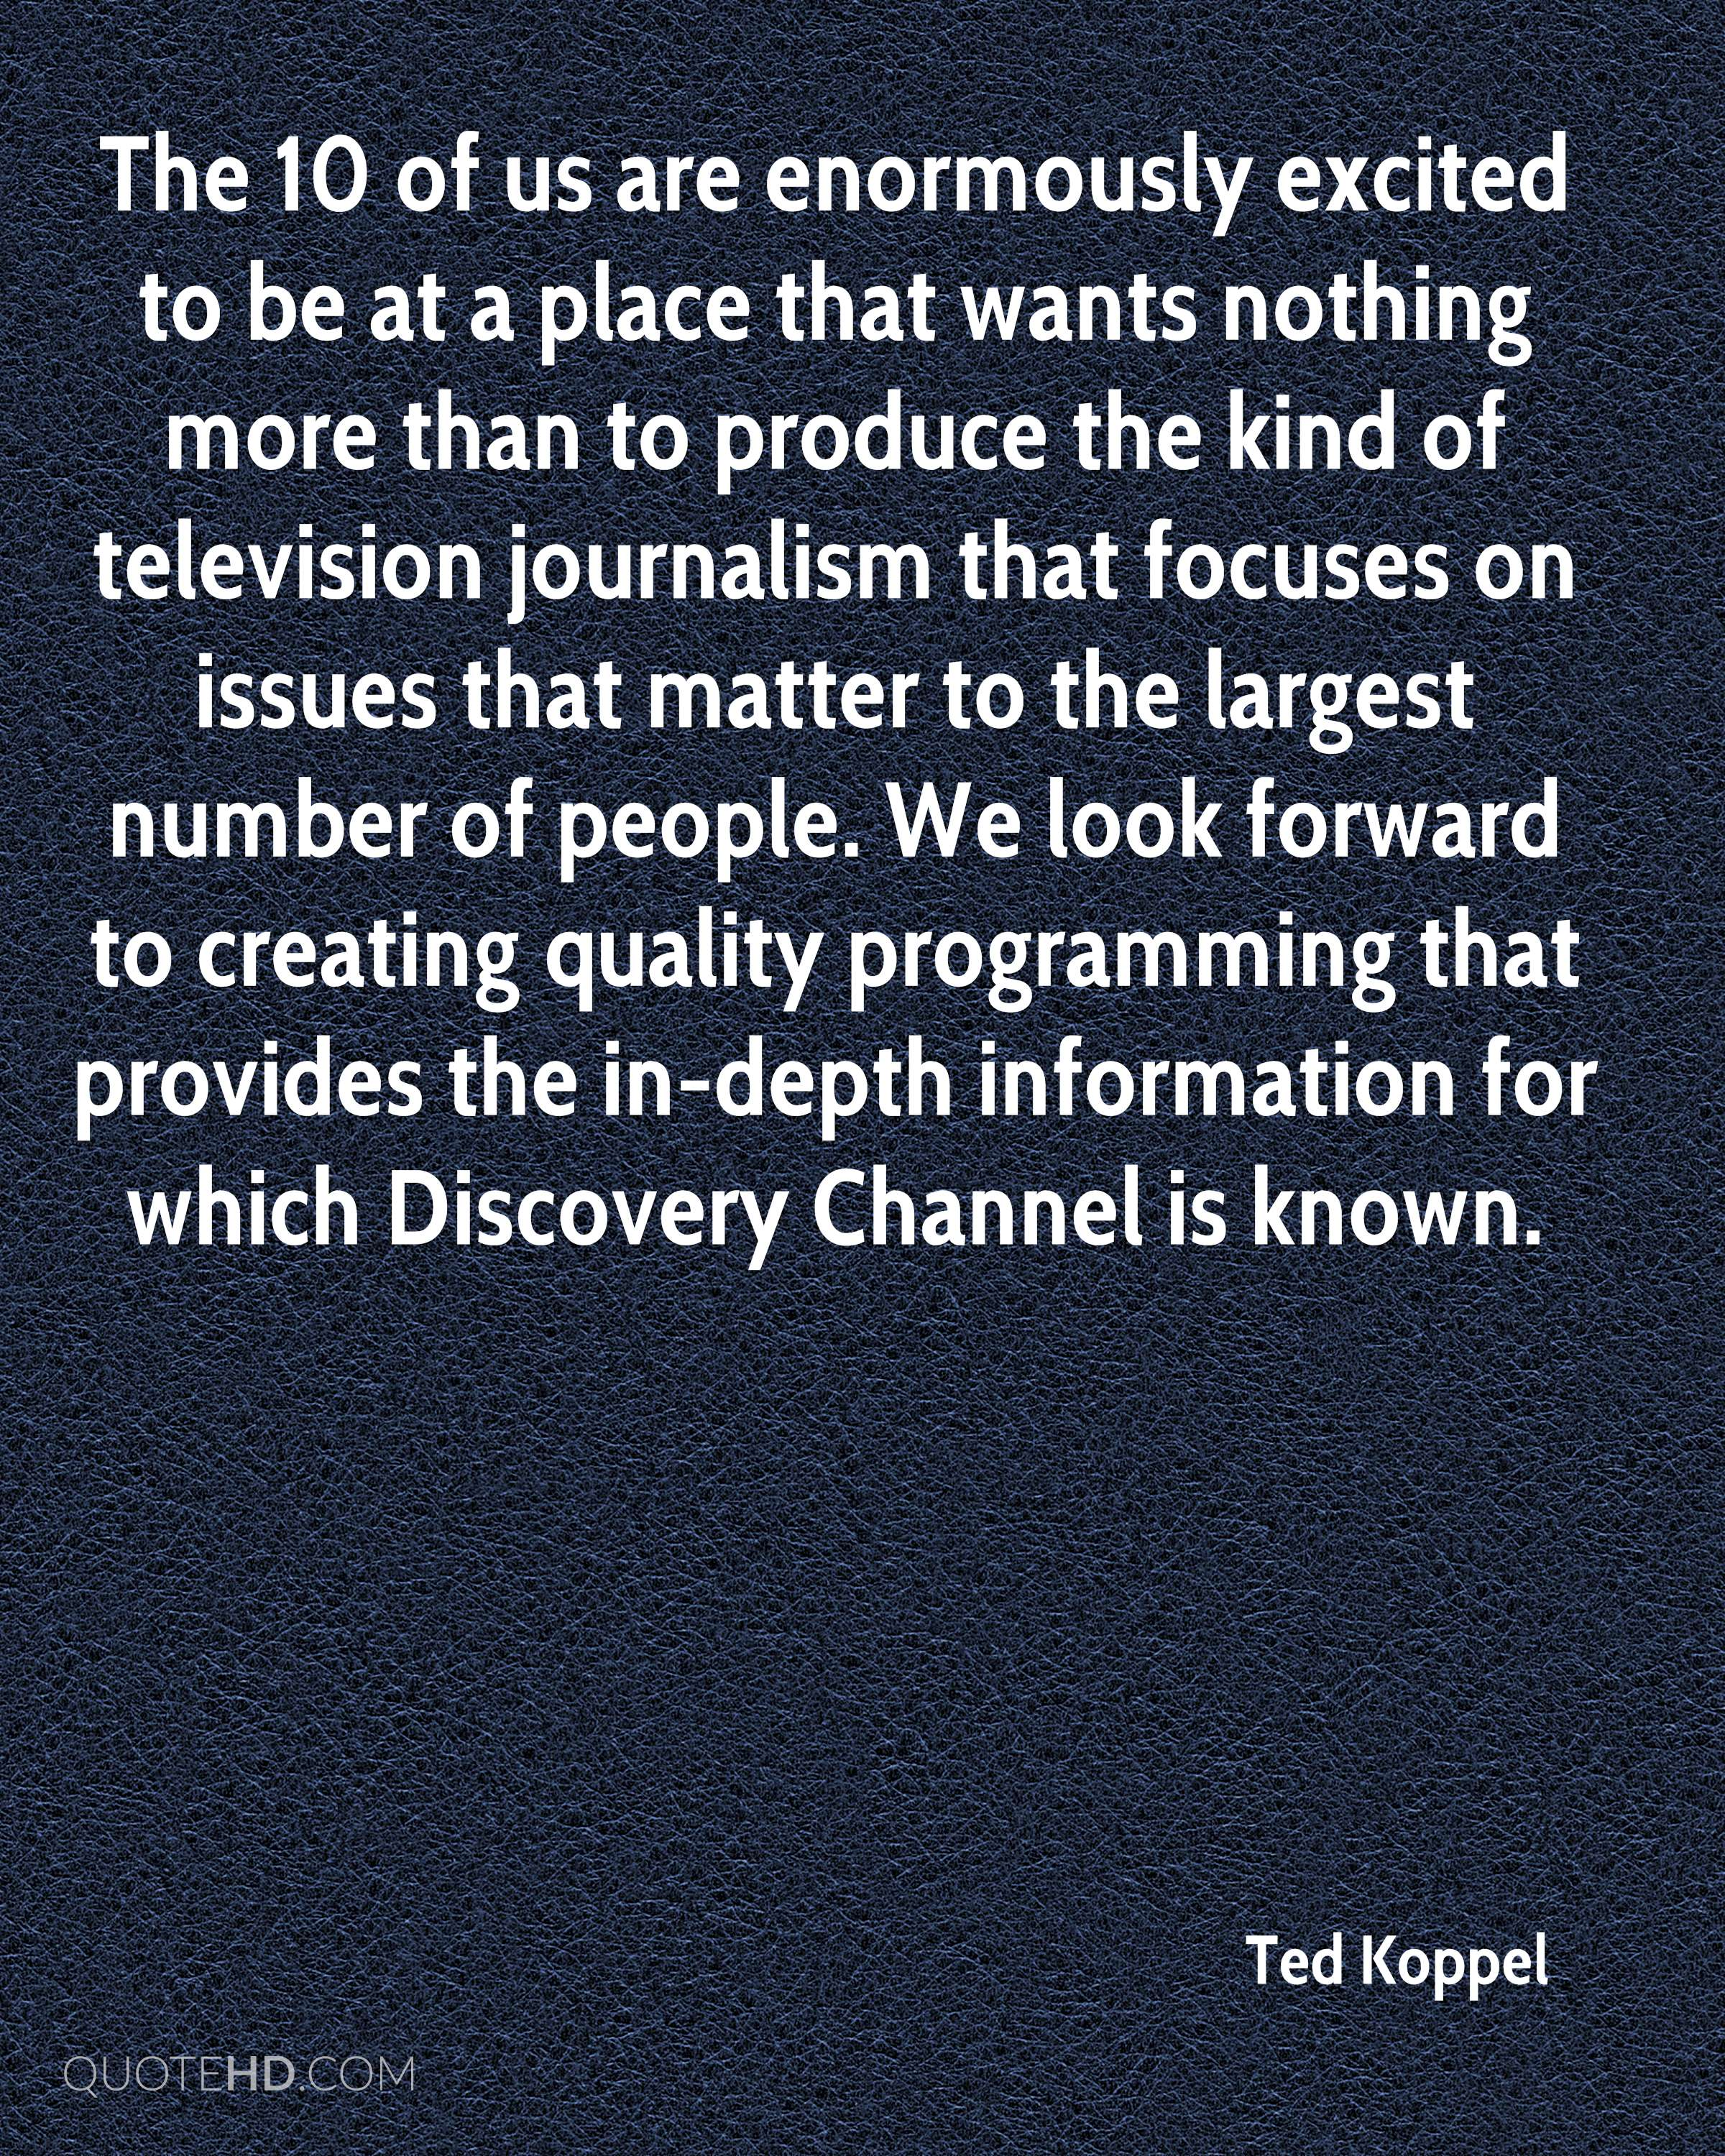 The 10 of us are enormously excited to be at a place that wants nothing more than to produce the kind of television journalism that focuses on issues that matter to the largest number of people. We look forward to creating quality programming that provides the in-depth information for which Discovery Channel is known.